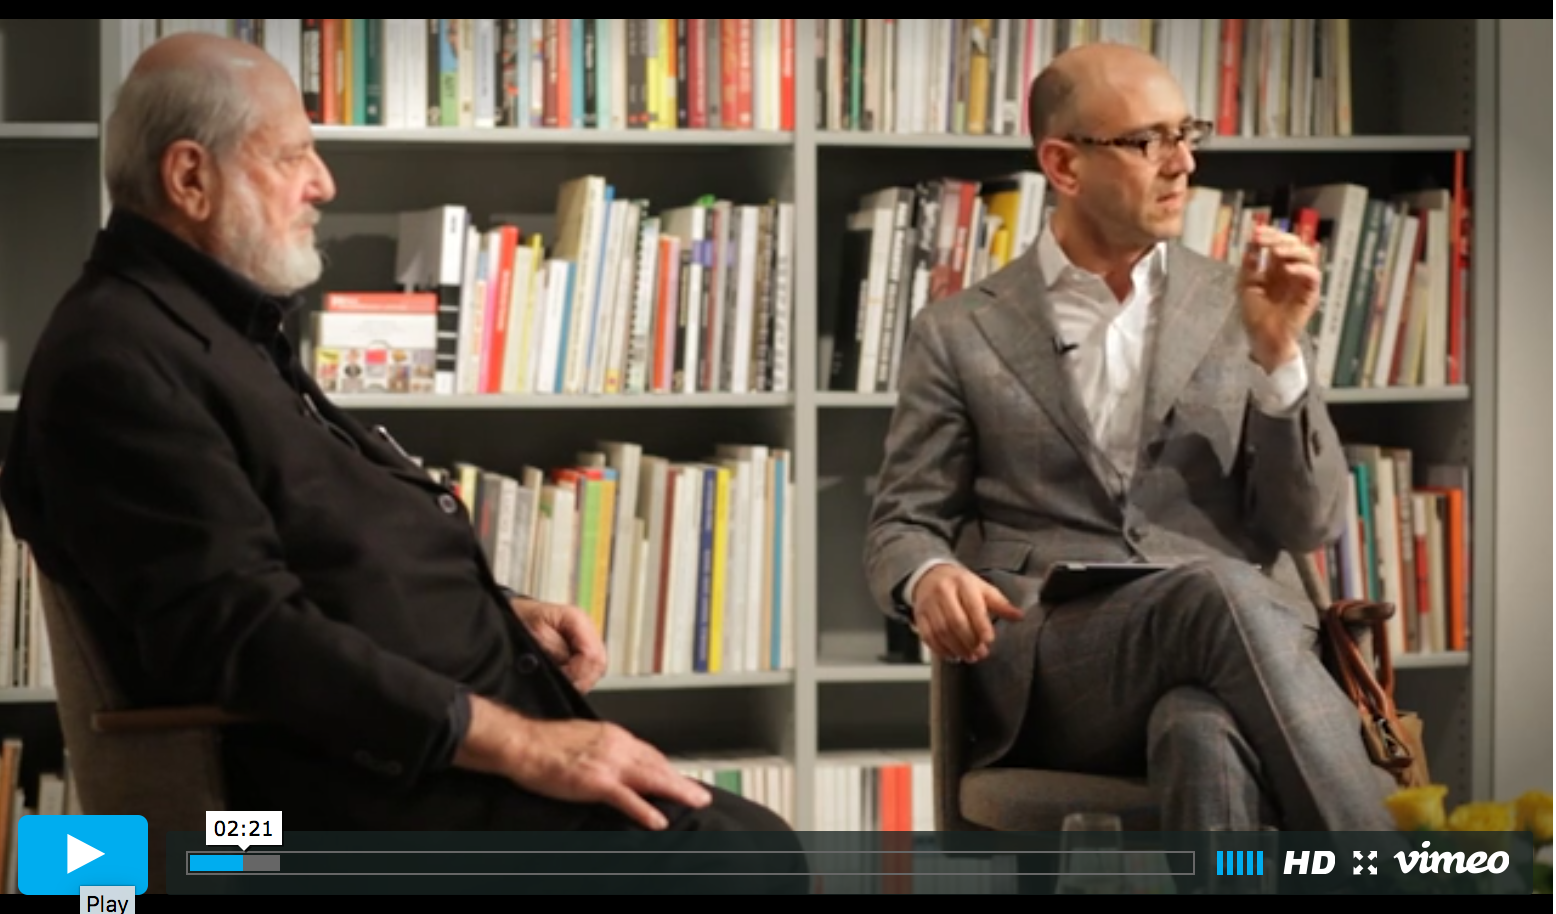 Michelangelo Pistoletto and Carlos Basualdo in conversation (full-length)